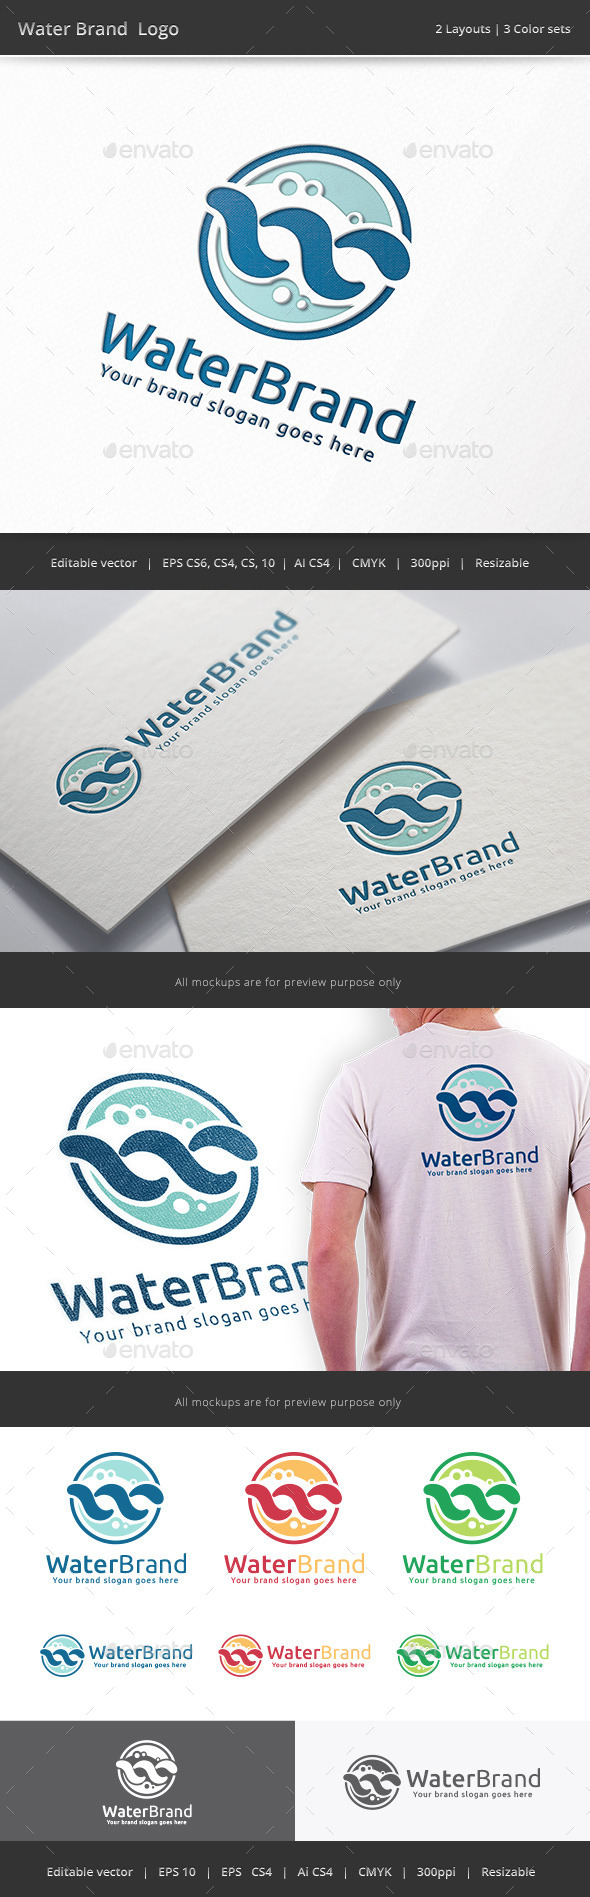 Water Brand Logo - Vector Abstract